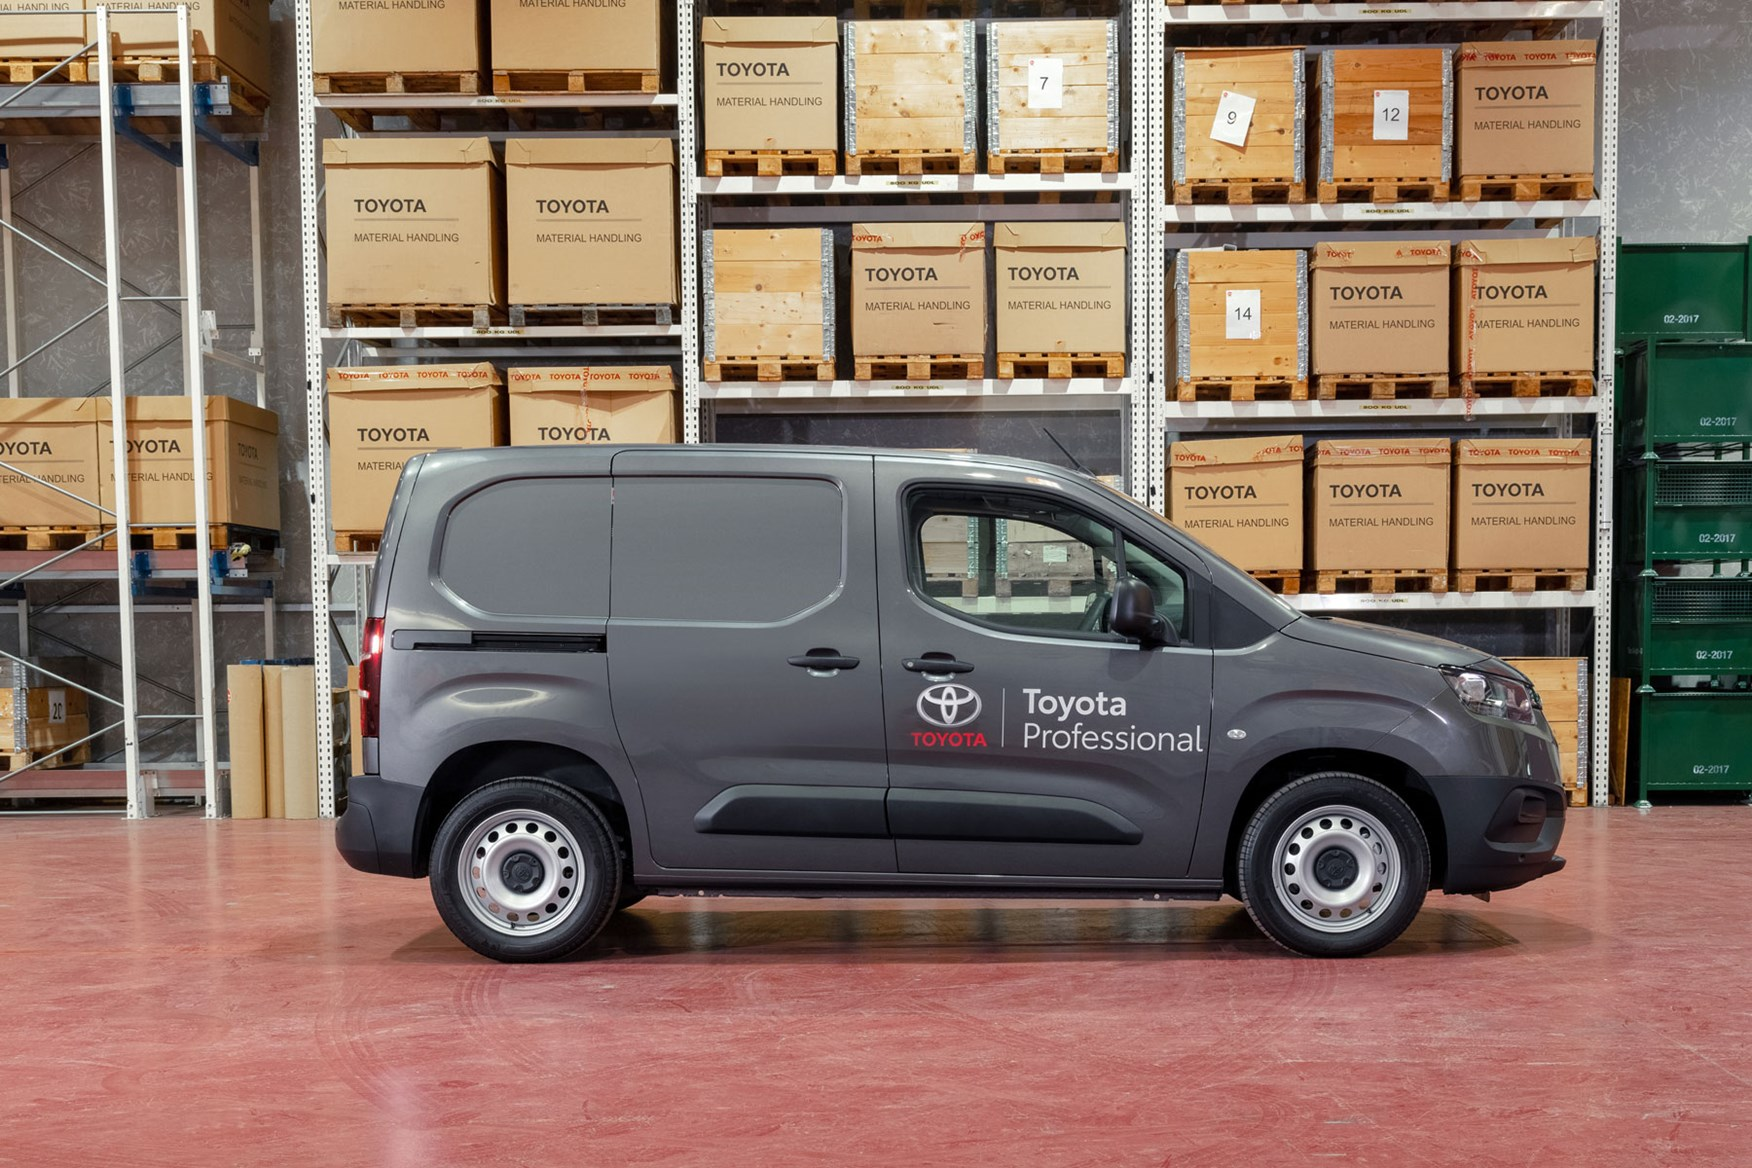 2020 Toyota Proace City review - SWB, side view, grey